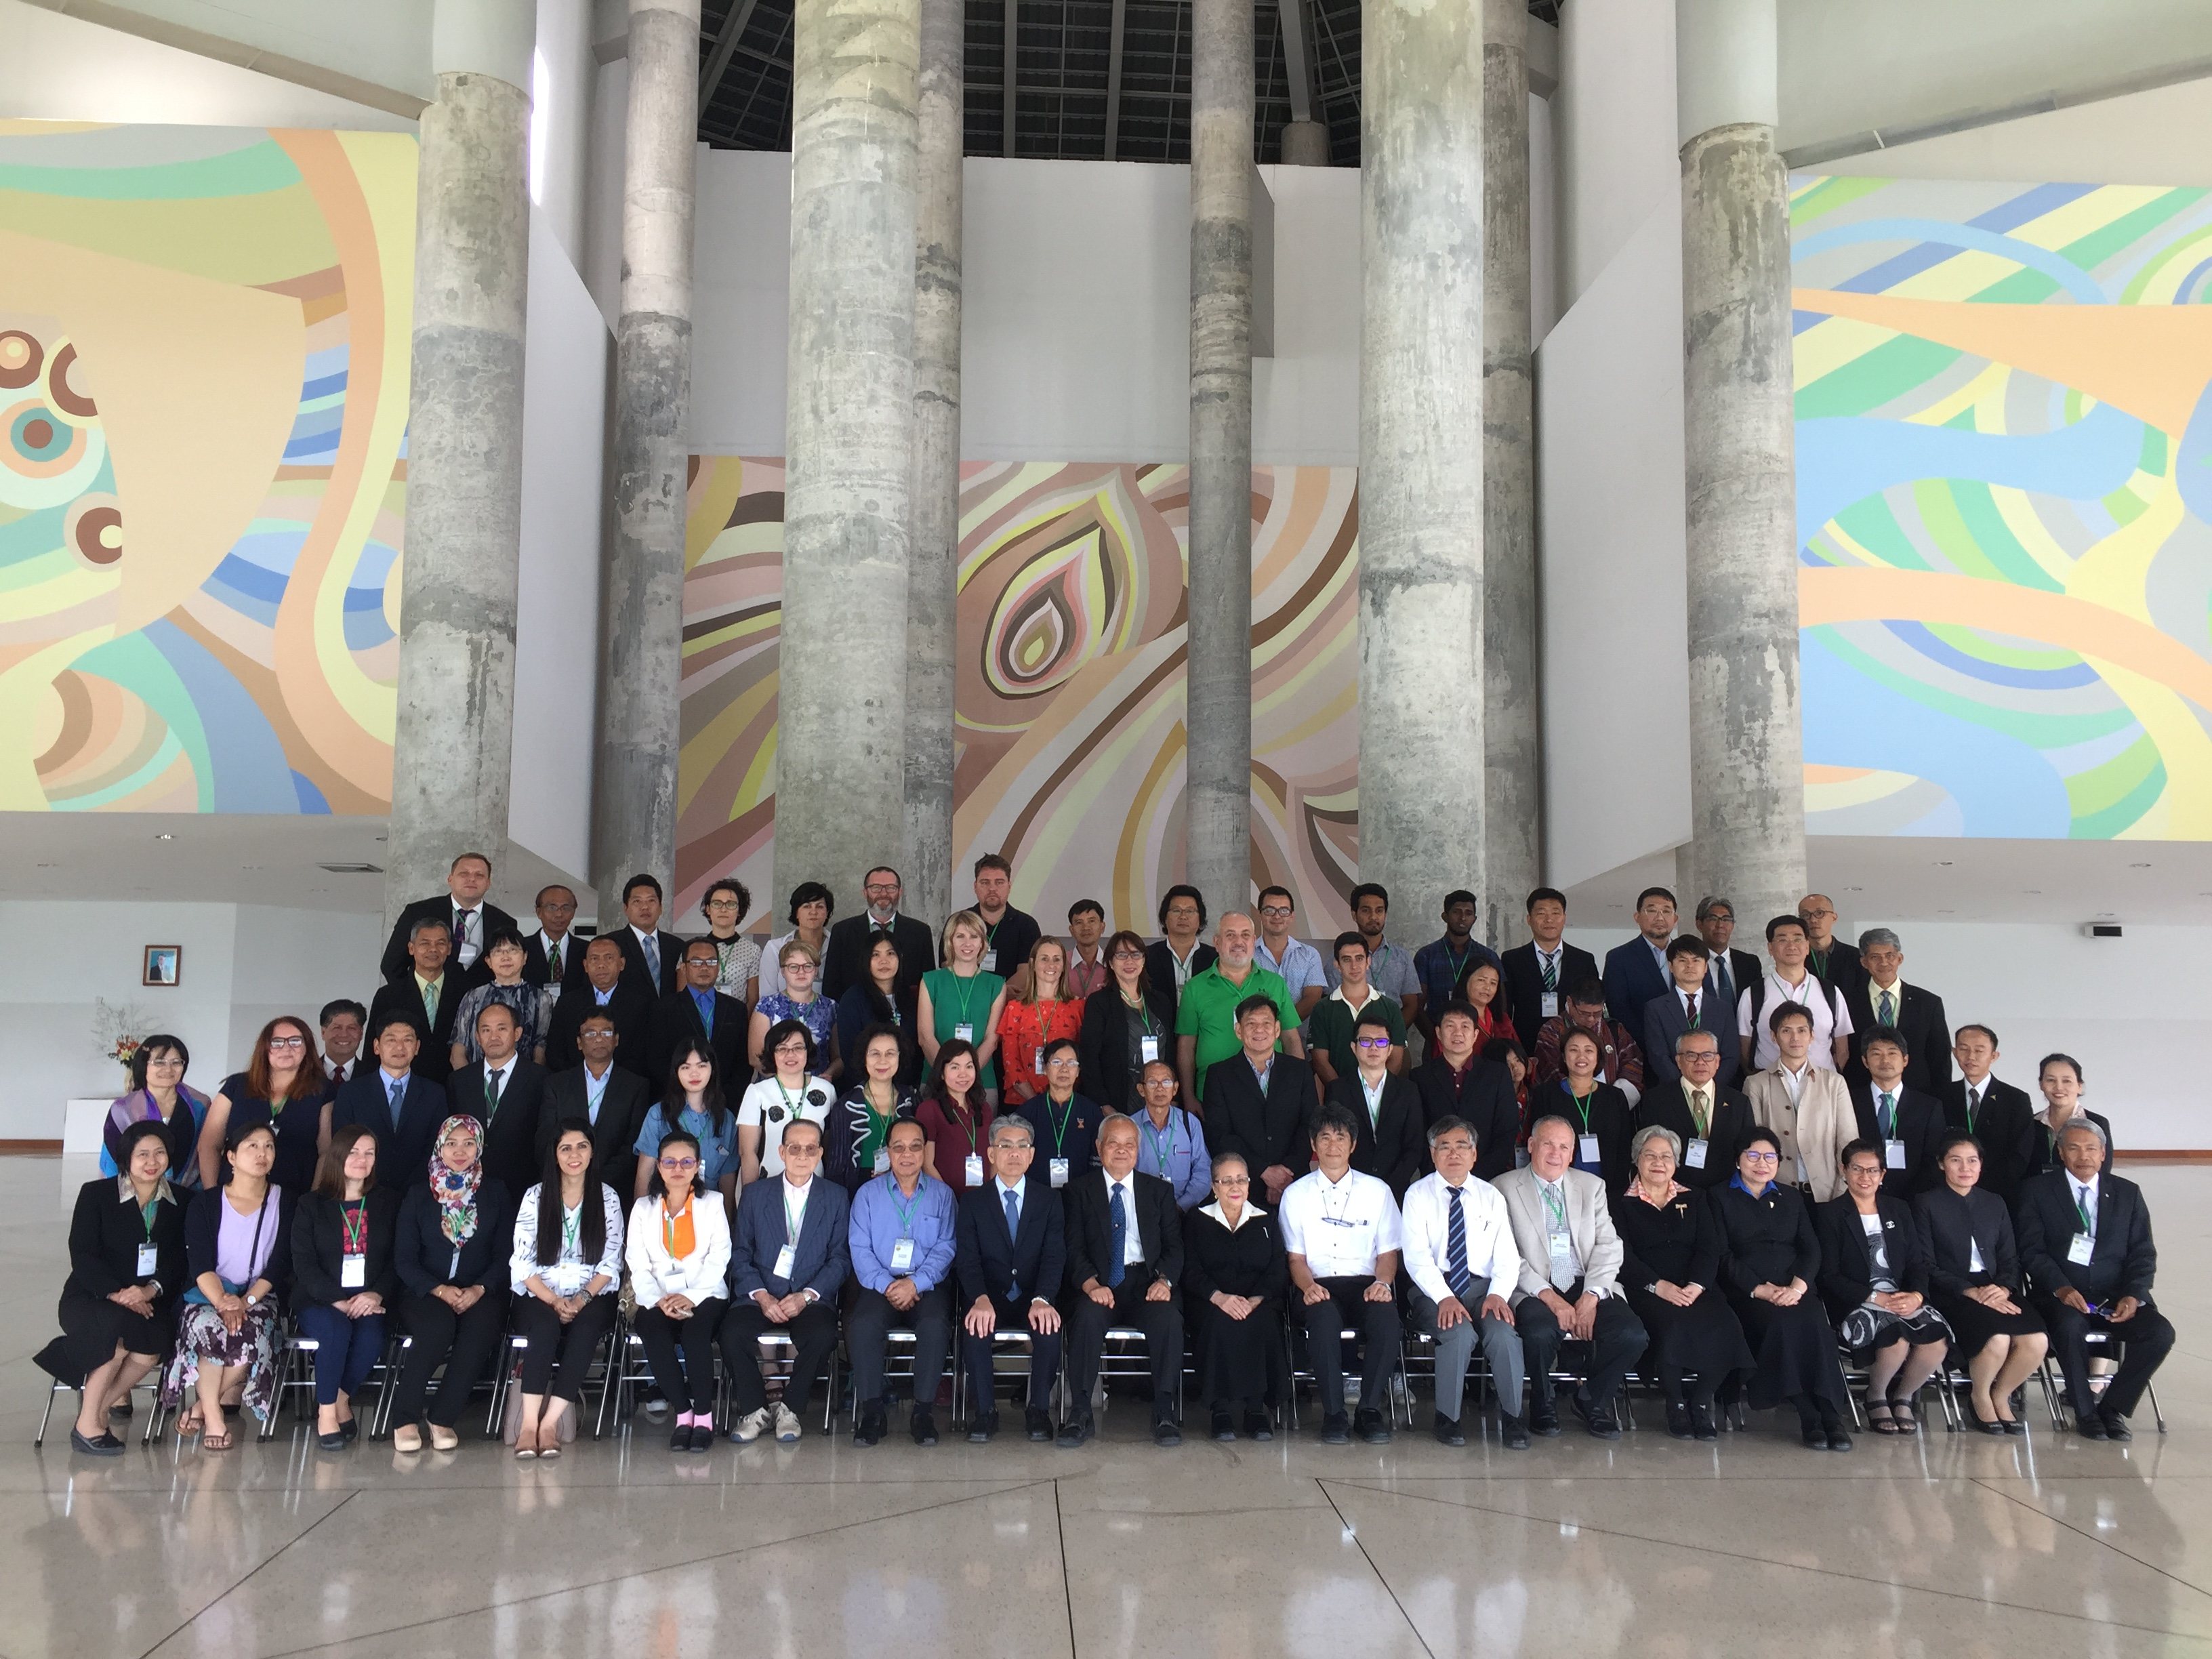 APNAN Meeting 2018 was held in Thailand